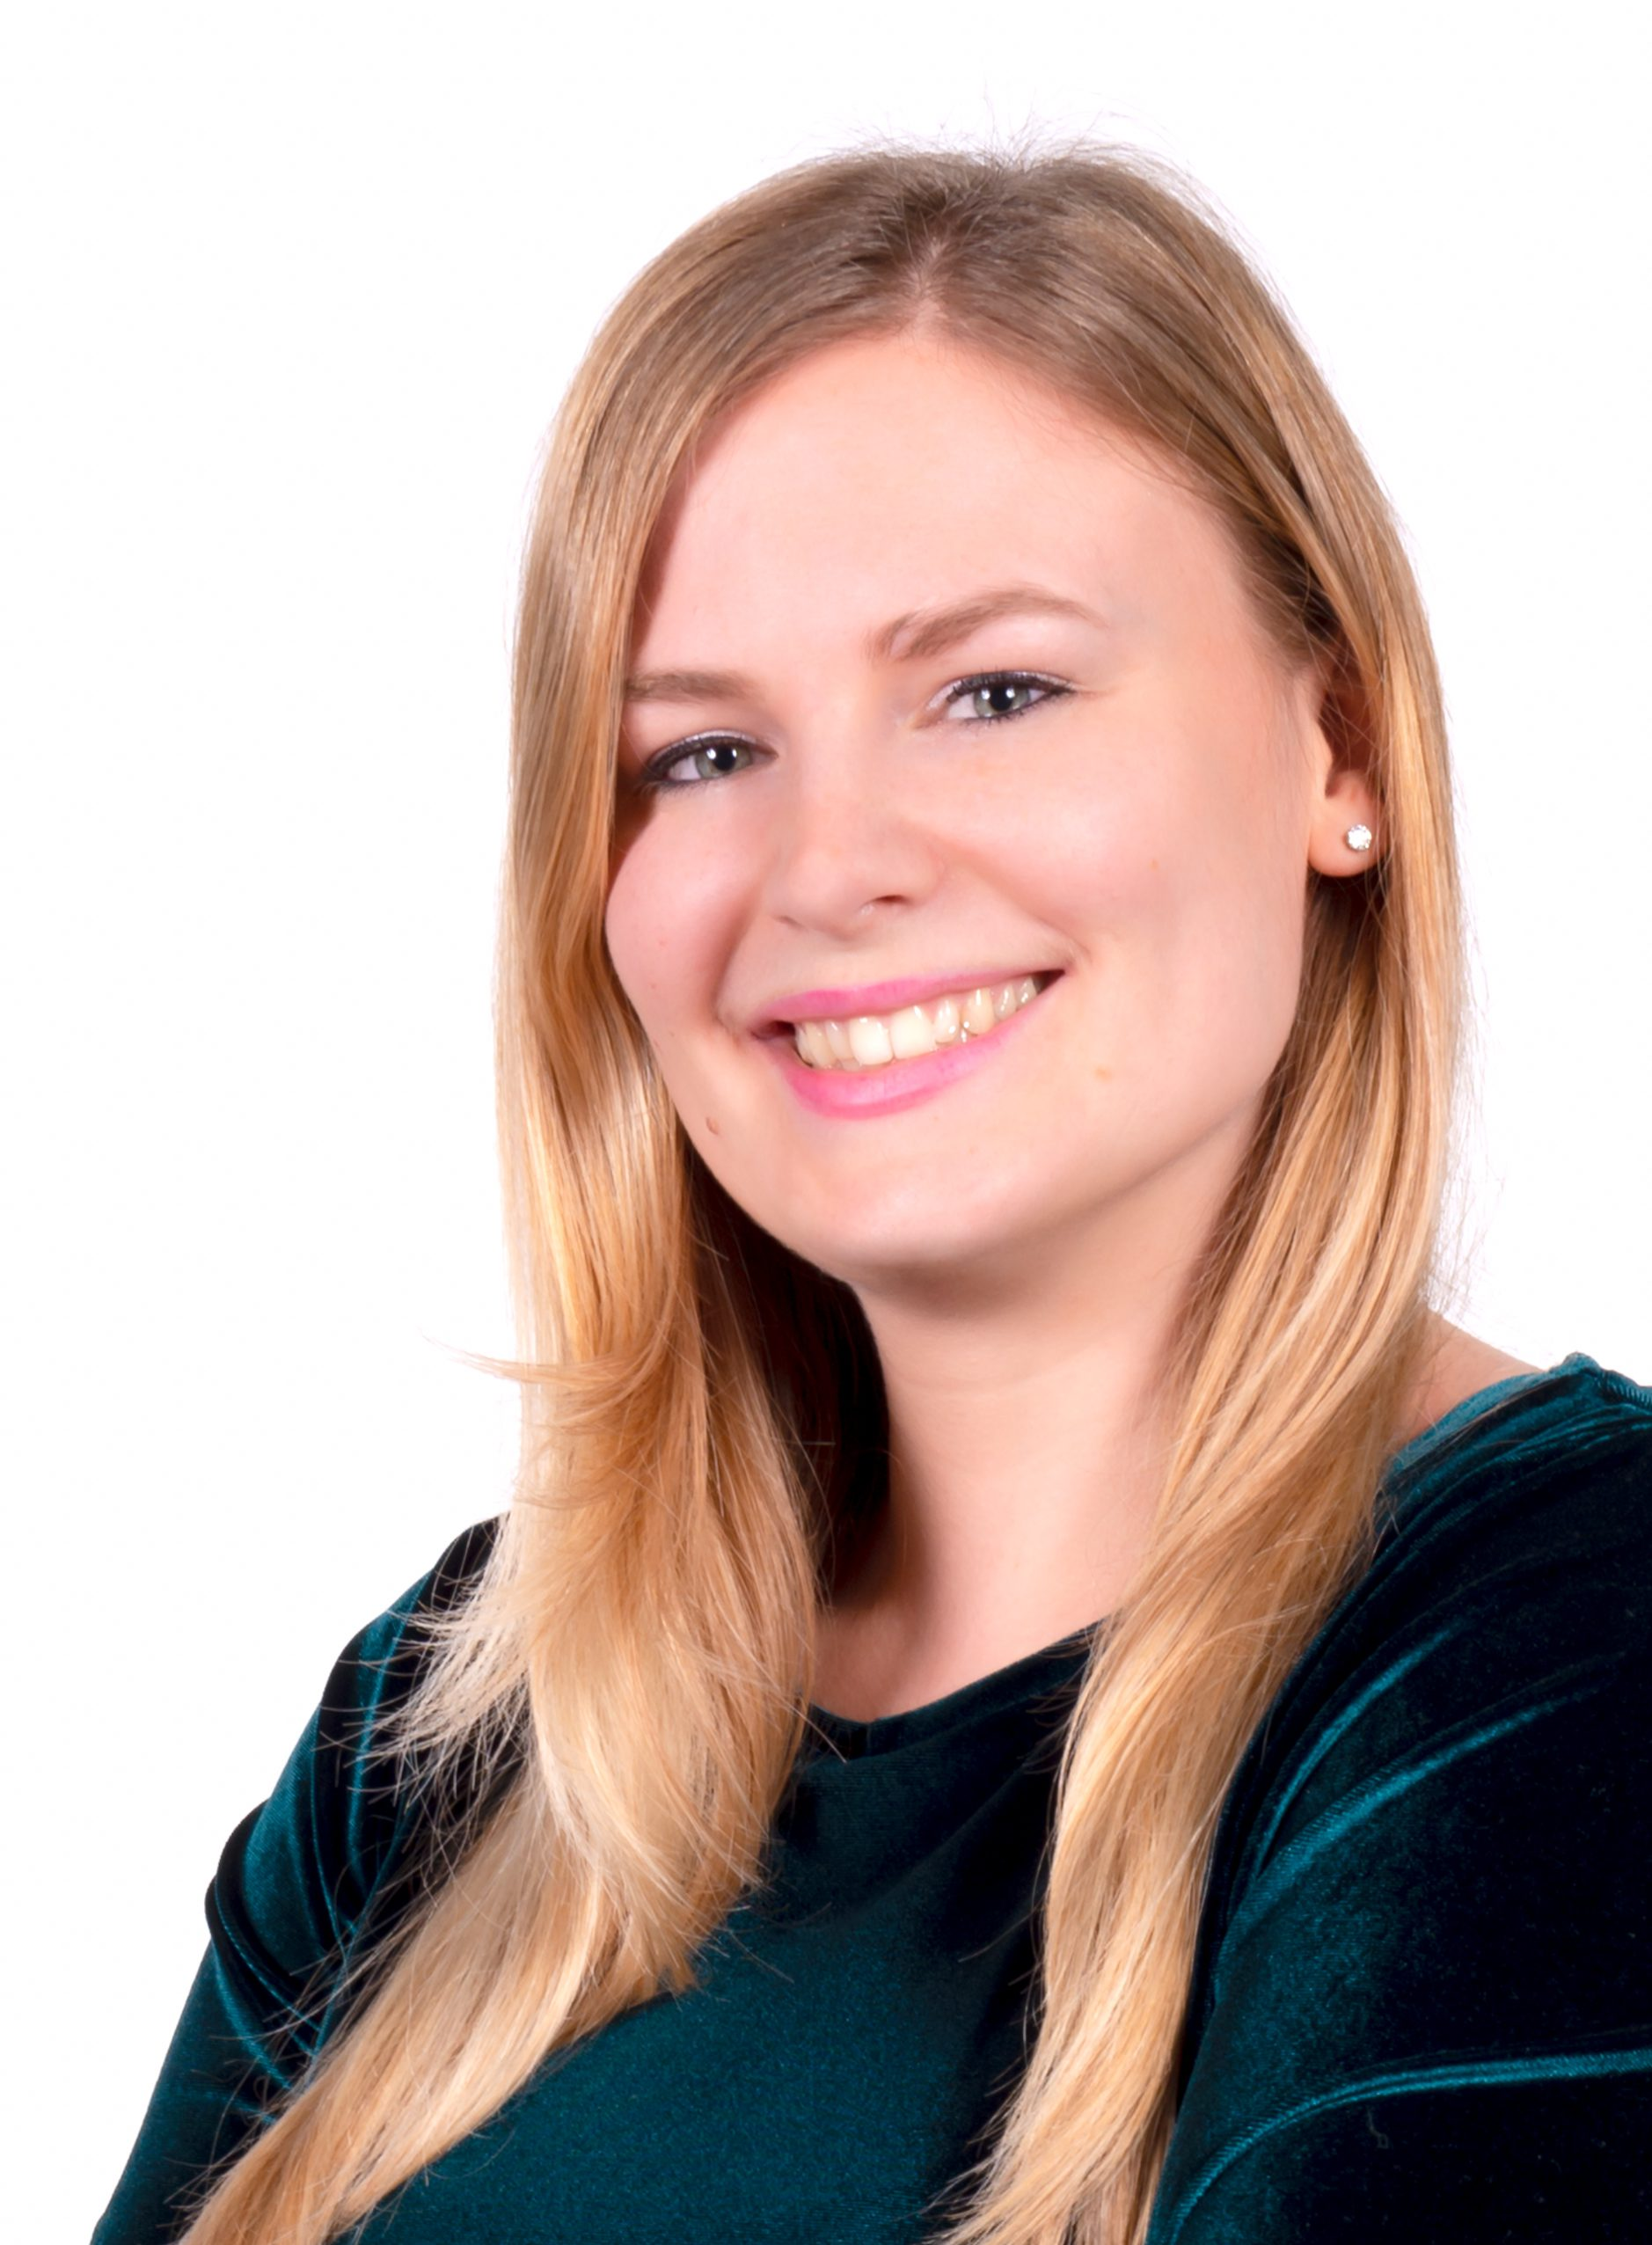 Liset Grooten, Msc Affiliate Junior Reseacher